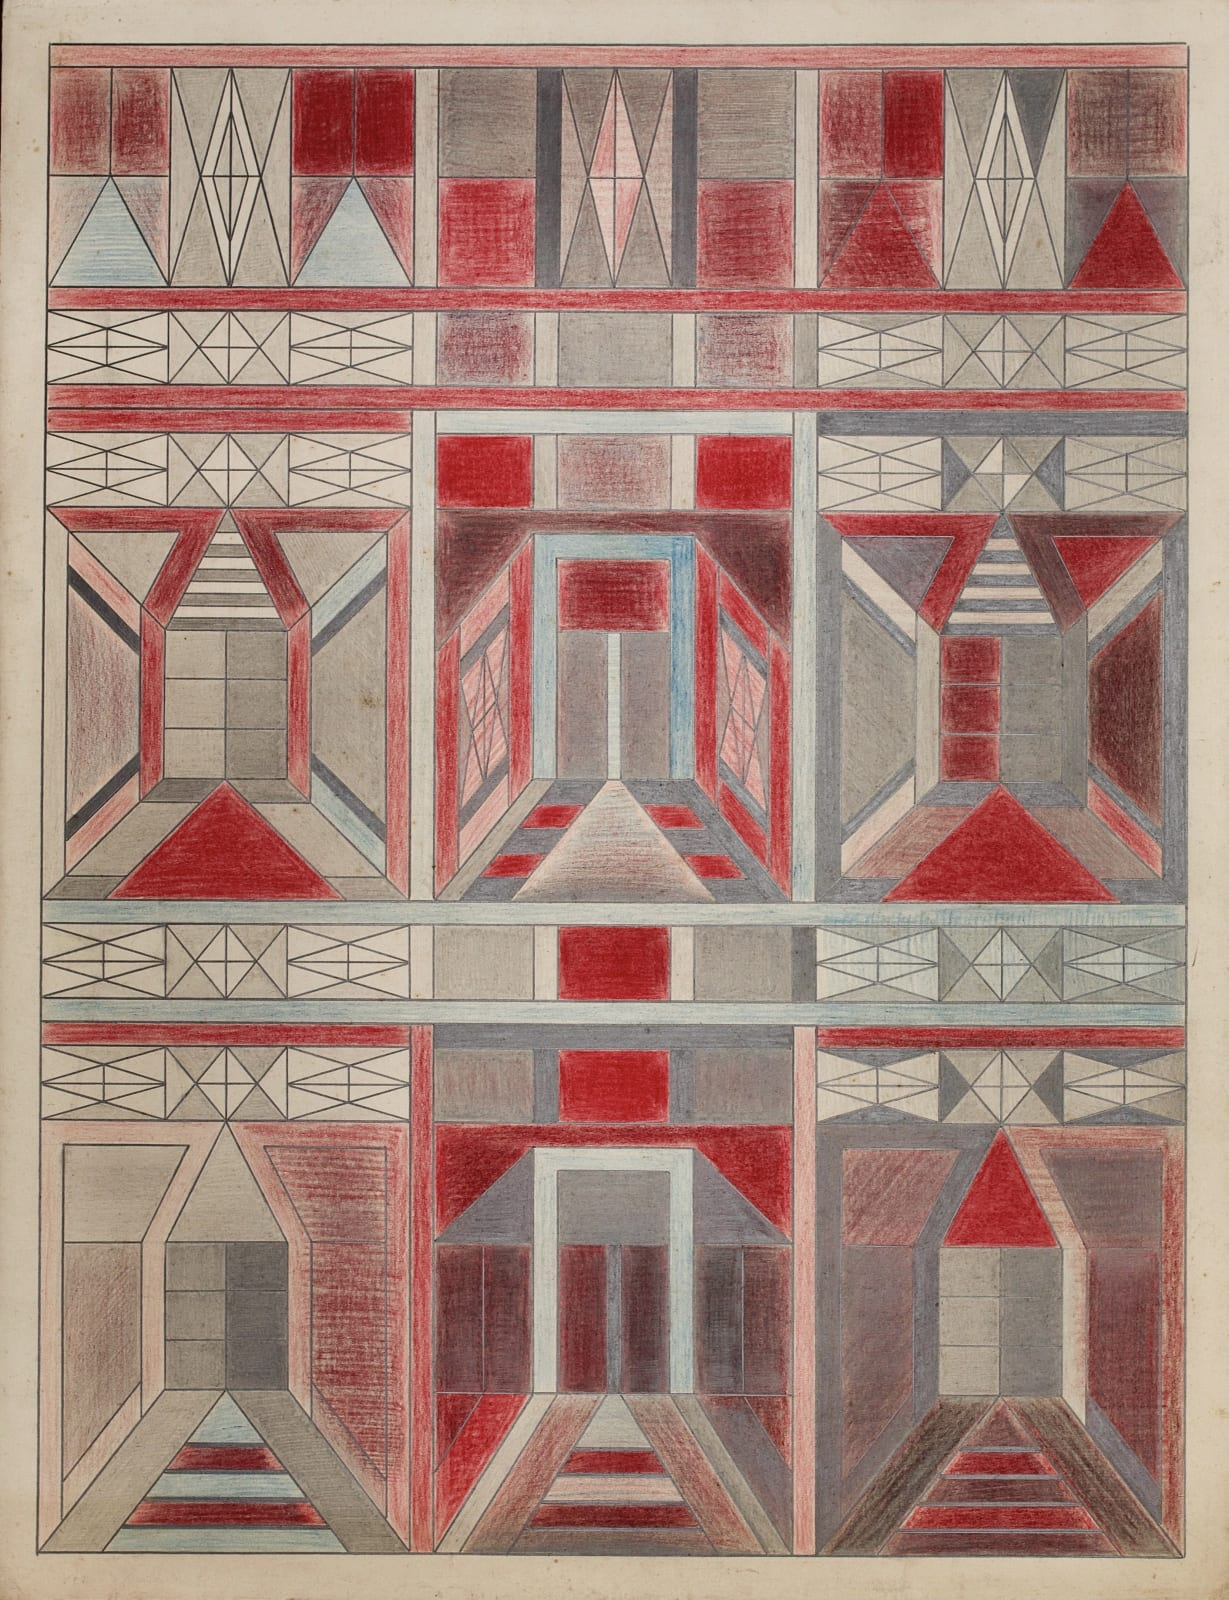 Untitled, ca. 1930 - 55 Colored pencil and graphite on paper 21 x 17 1/2 in. 53.3 x 44.5 cm. (DG 45)